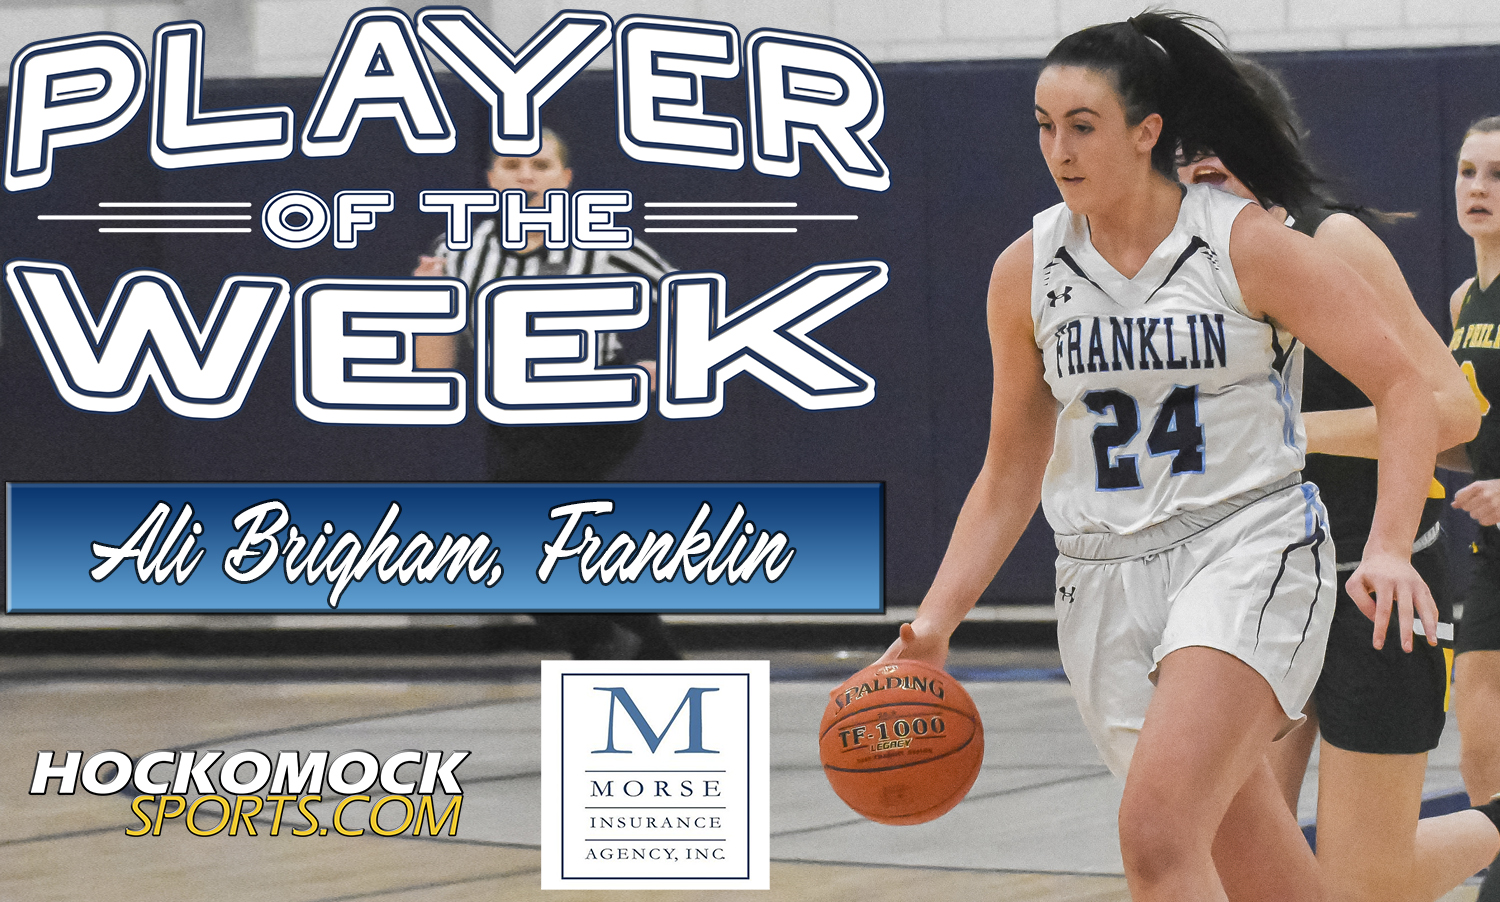 Player of the Week: Ali Brigham  (HockomockSports.com photo)